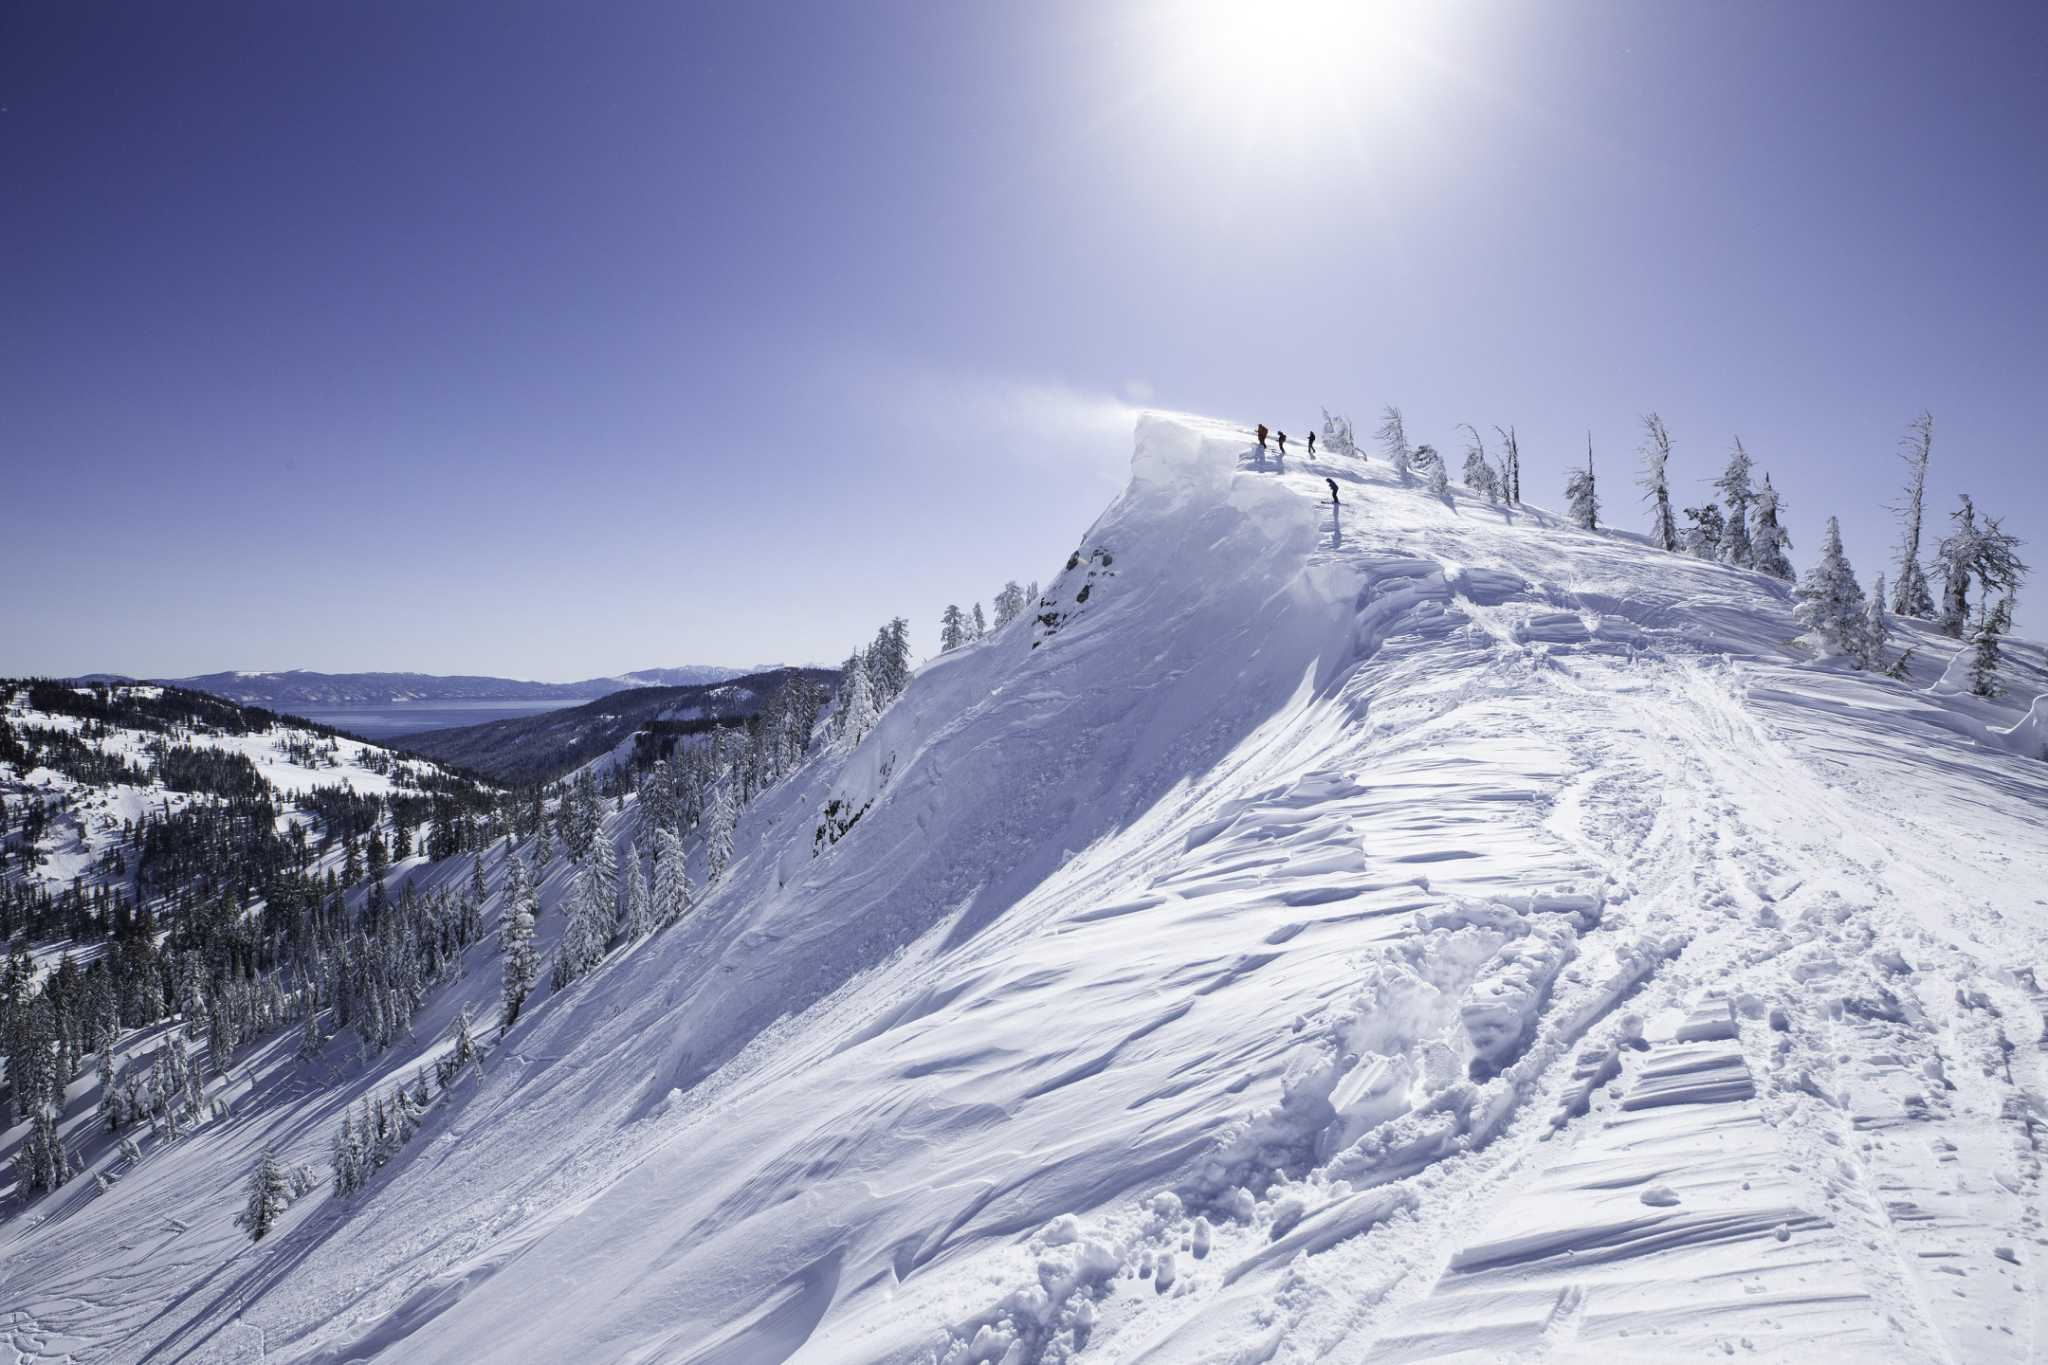 One dead, one seriously injured in avalanche at Alpine Meadows near Tahoe